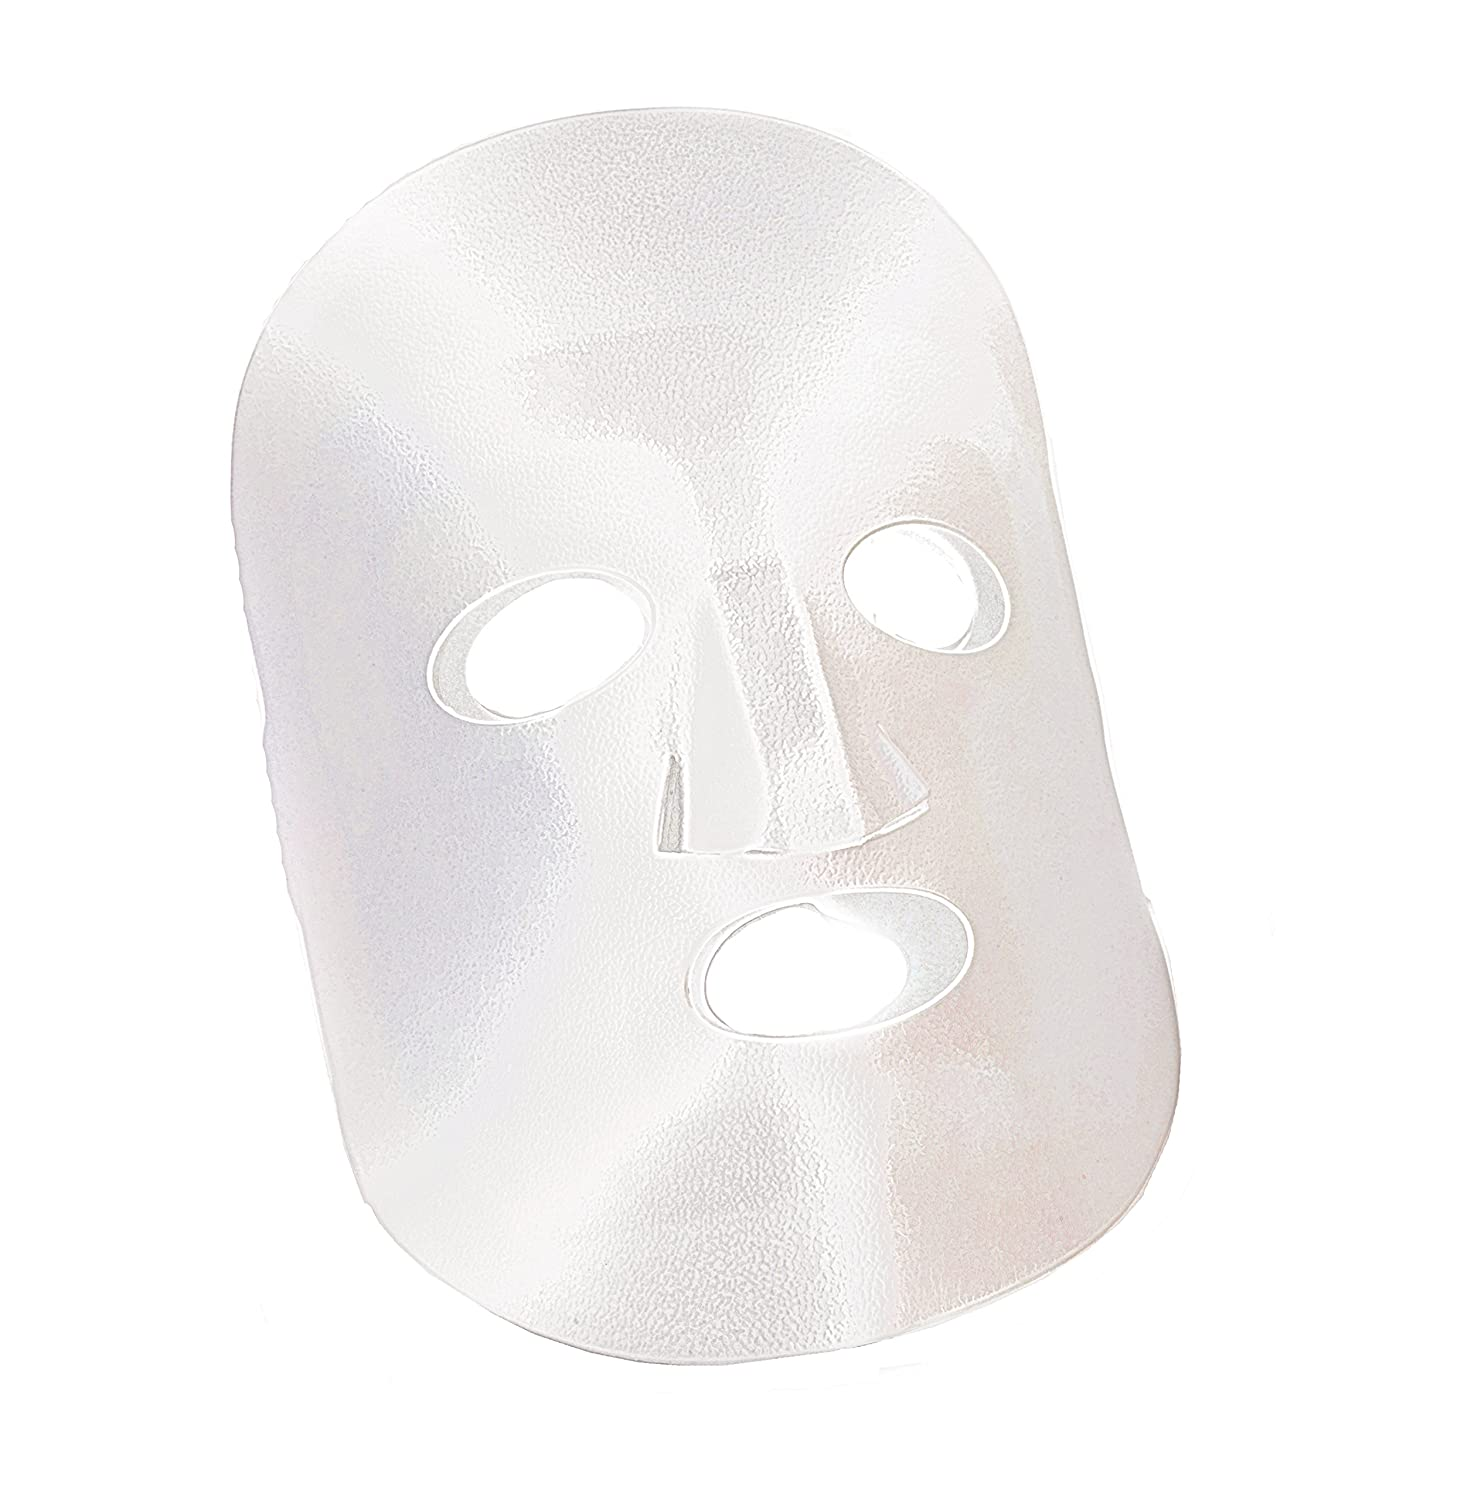 Skin Care Experts Smart Photofacial Mask with 3 Lights SCE Contract Manufacturer